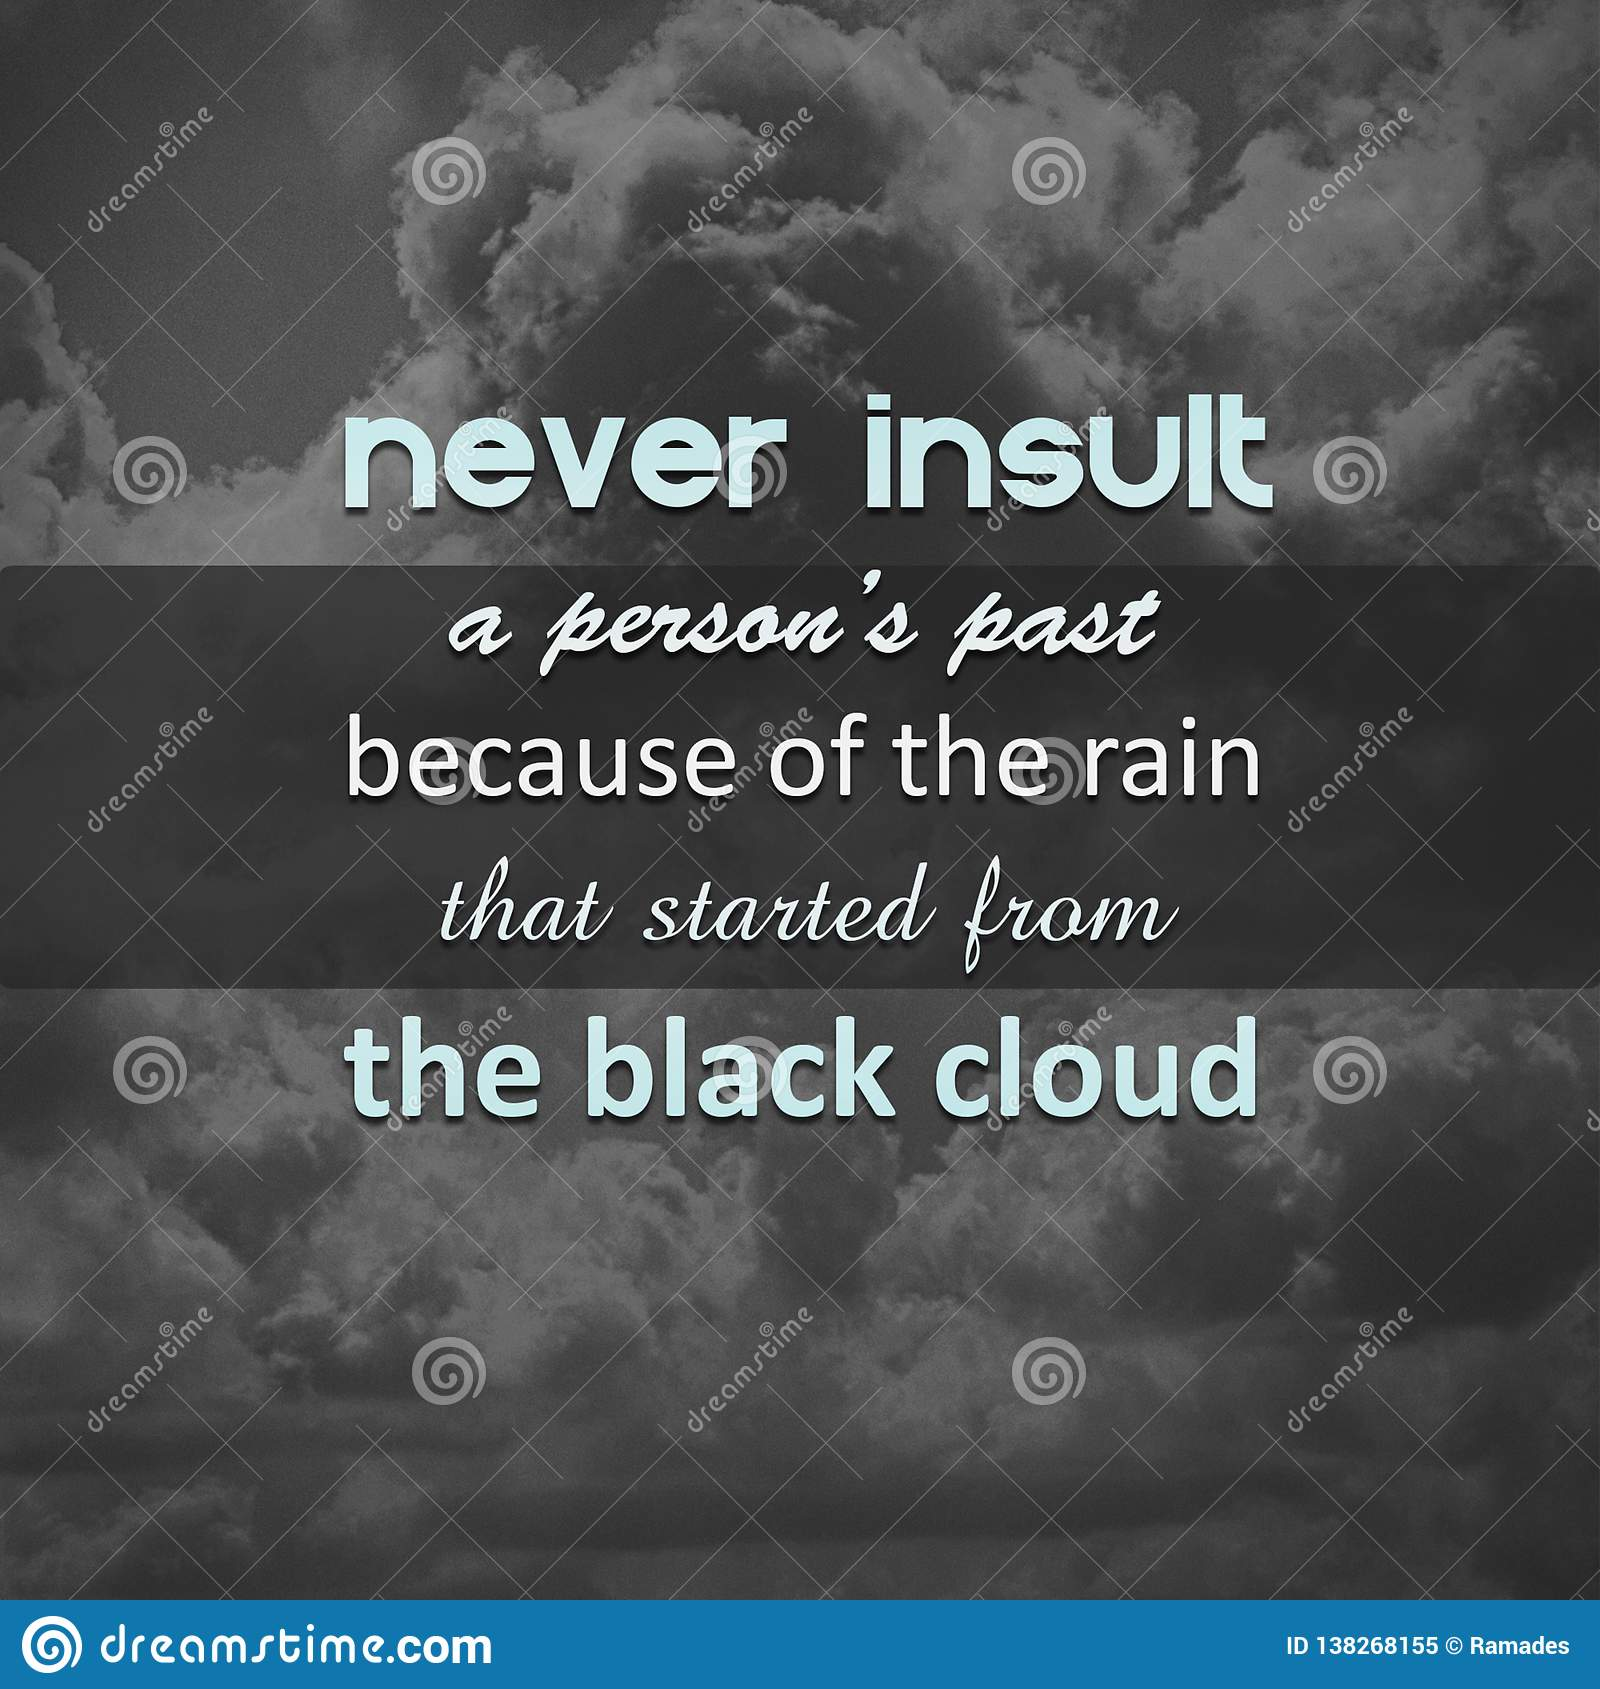 Quotes motivational and inspiring poster cloud